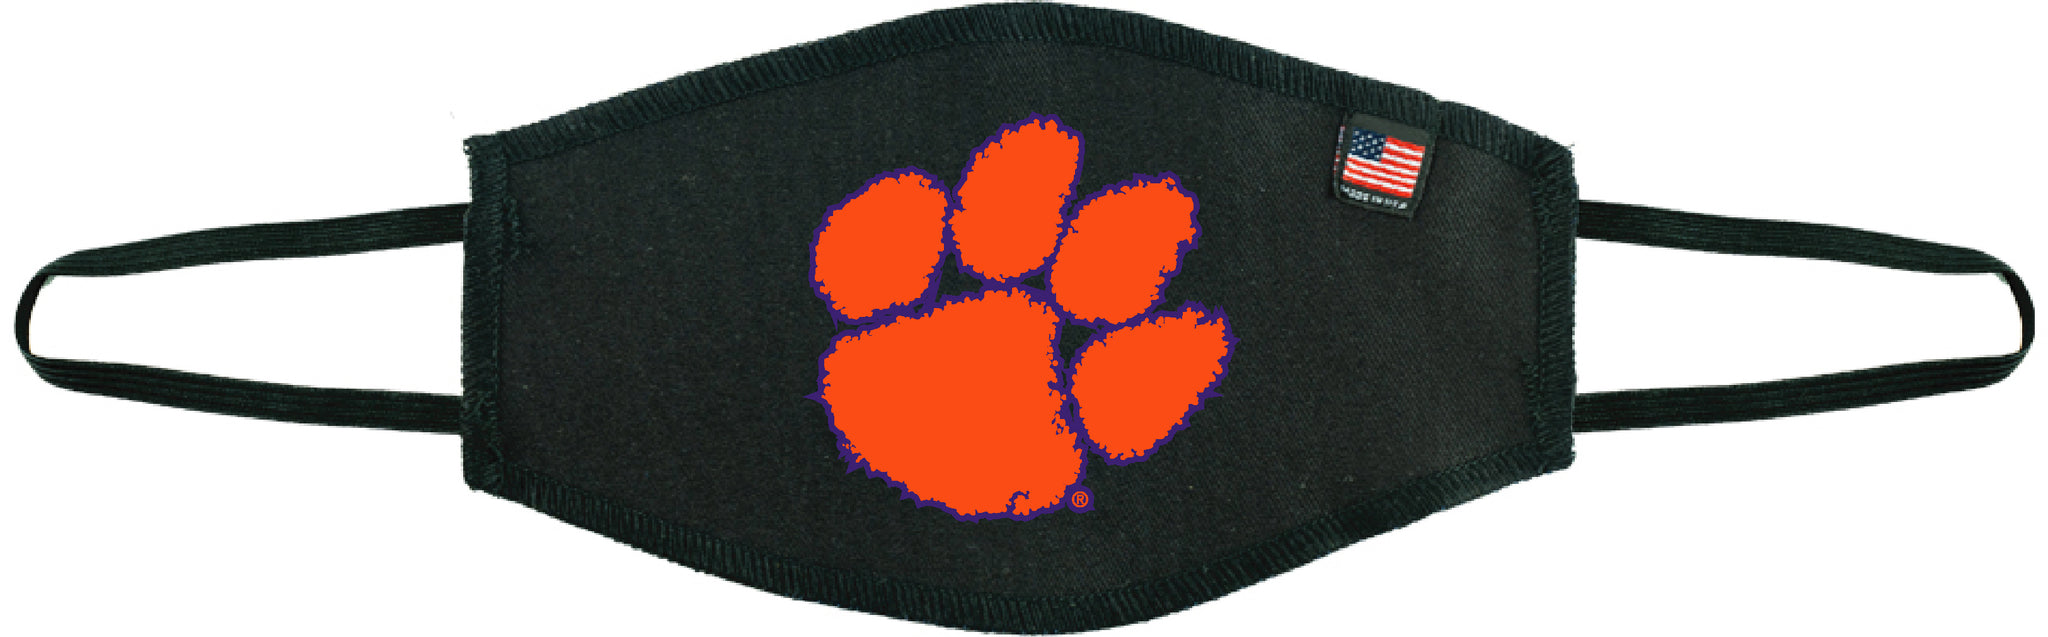 Clemson University Tiger Paw - Black